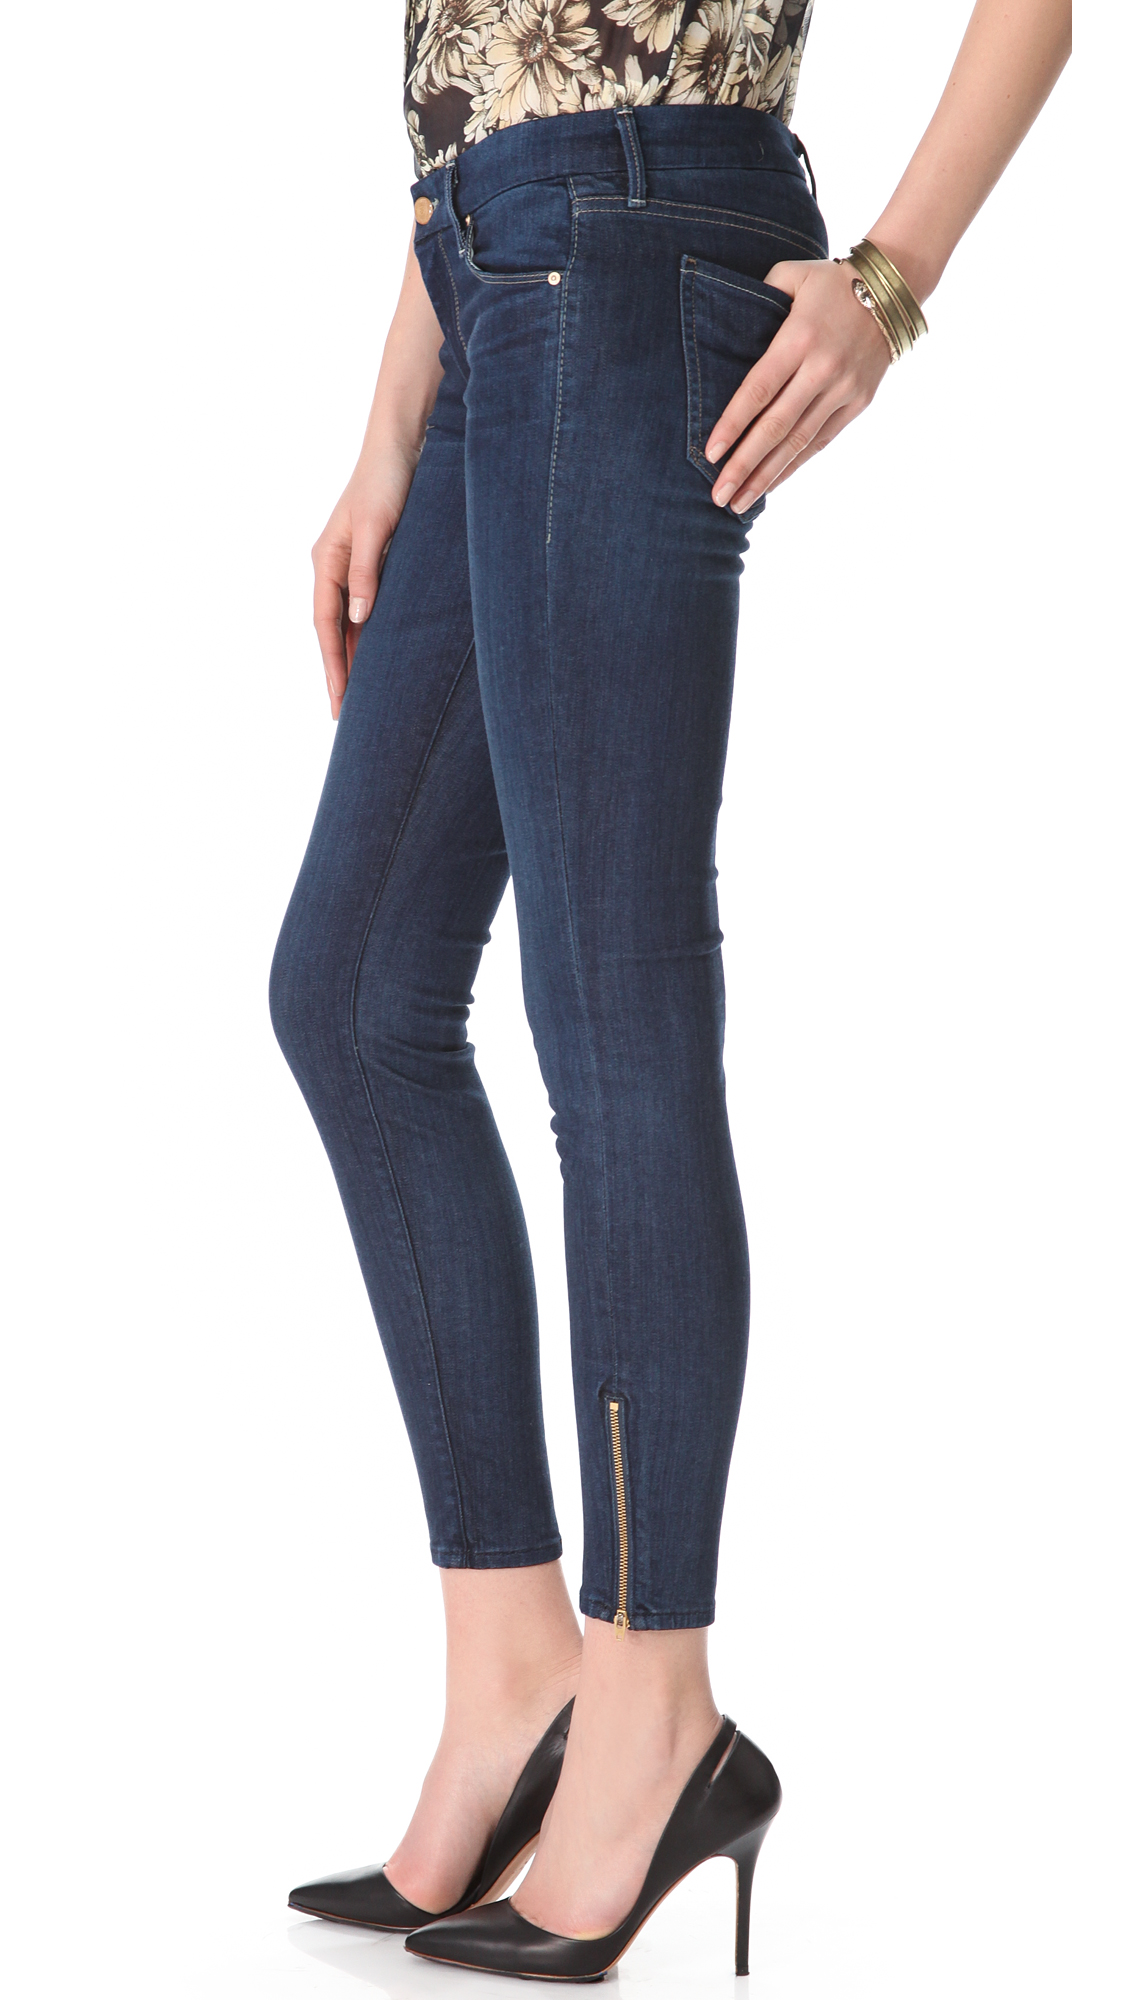 MOTHER Looker Ankle Zip Skinny Jeans | SHOPBOP Extra 25% Off Sale ...